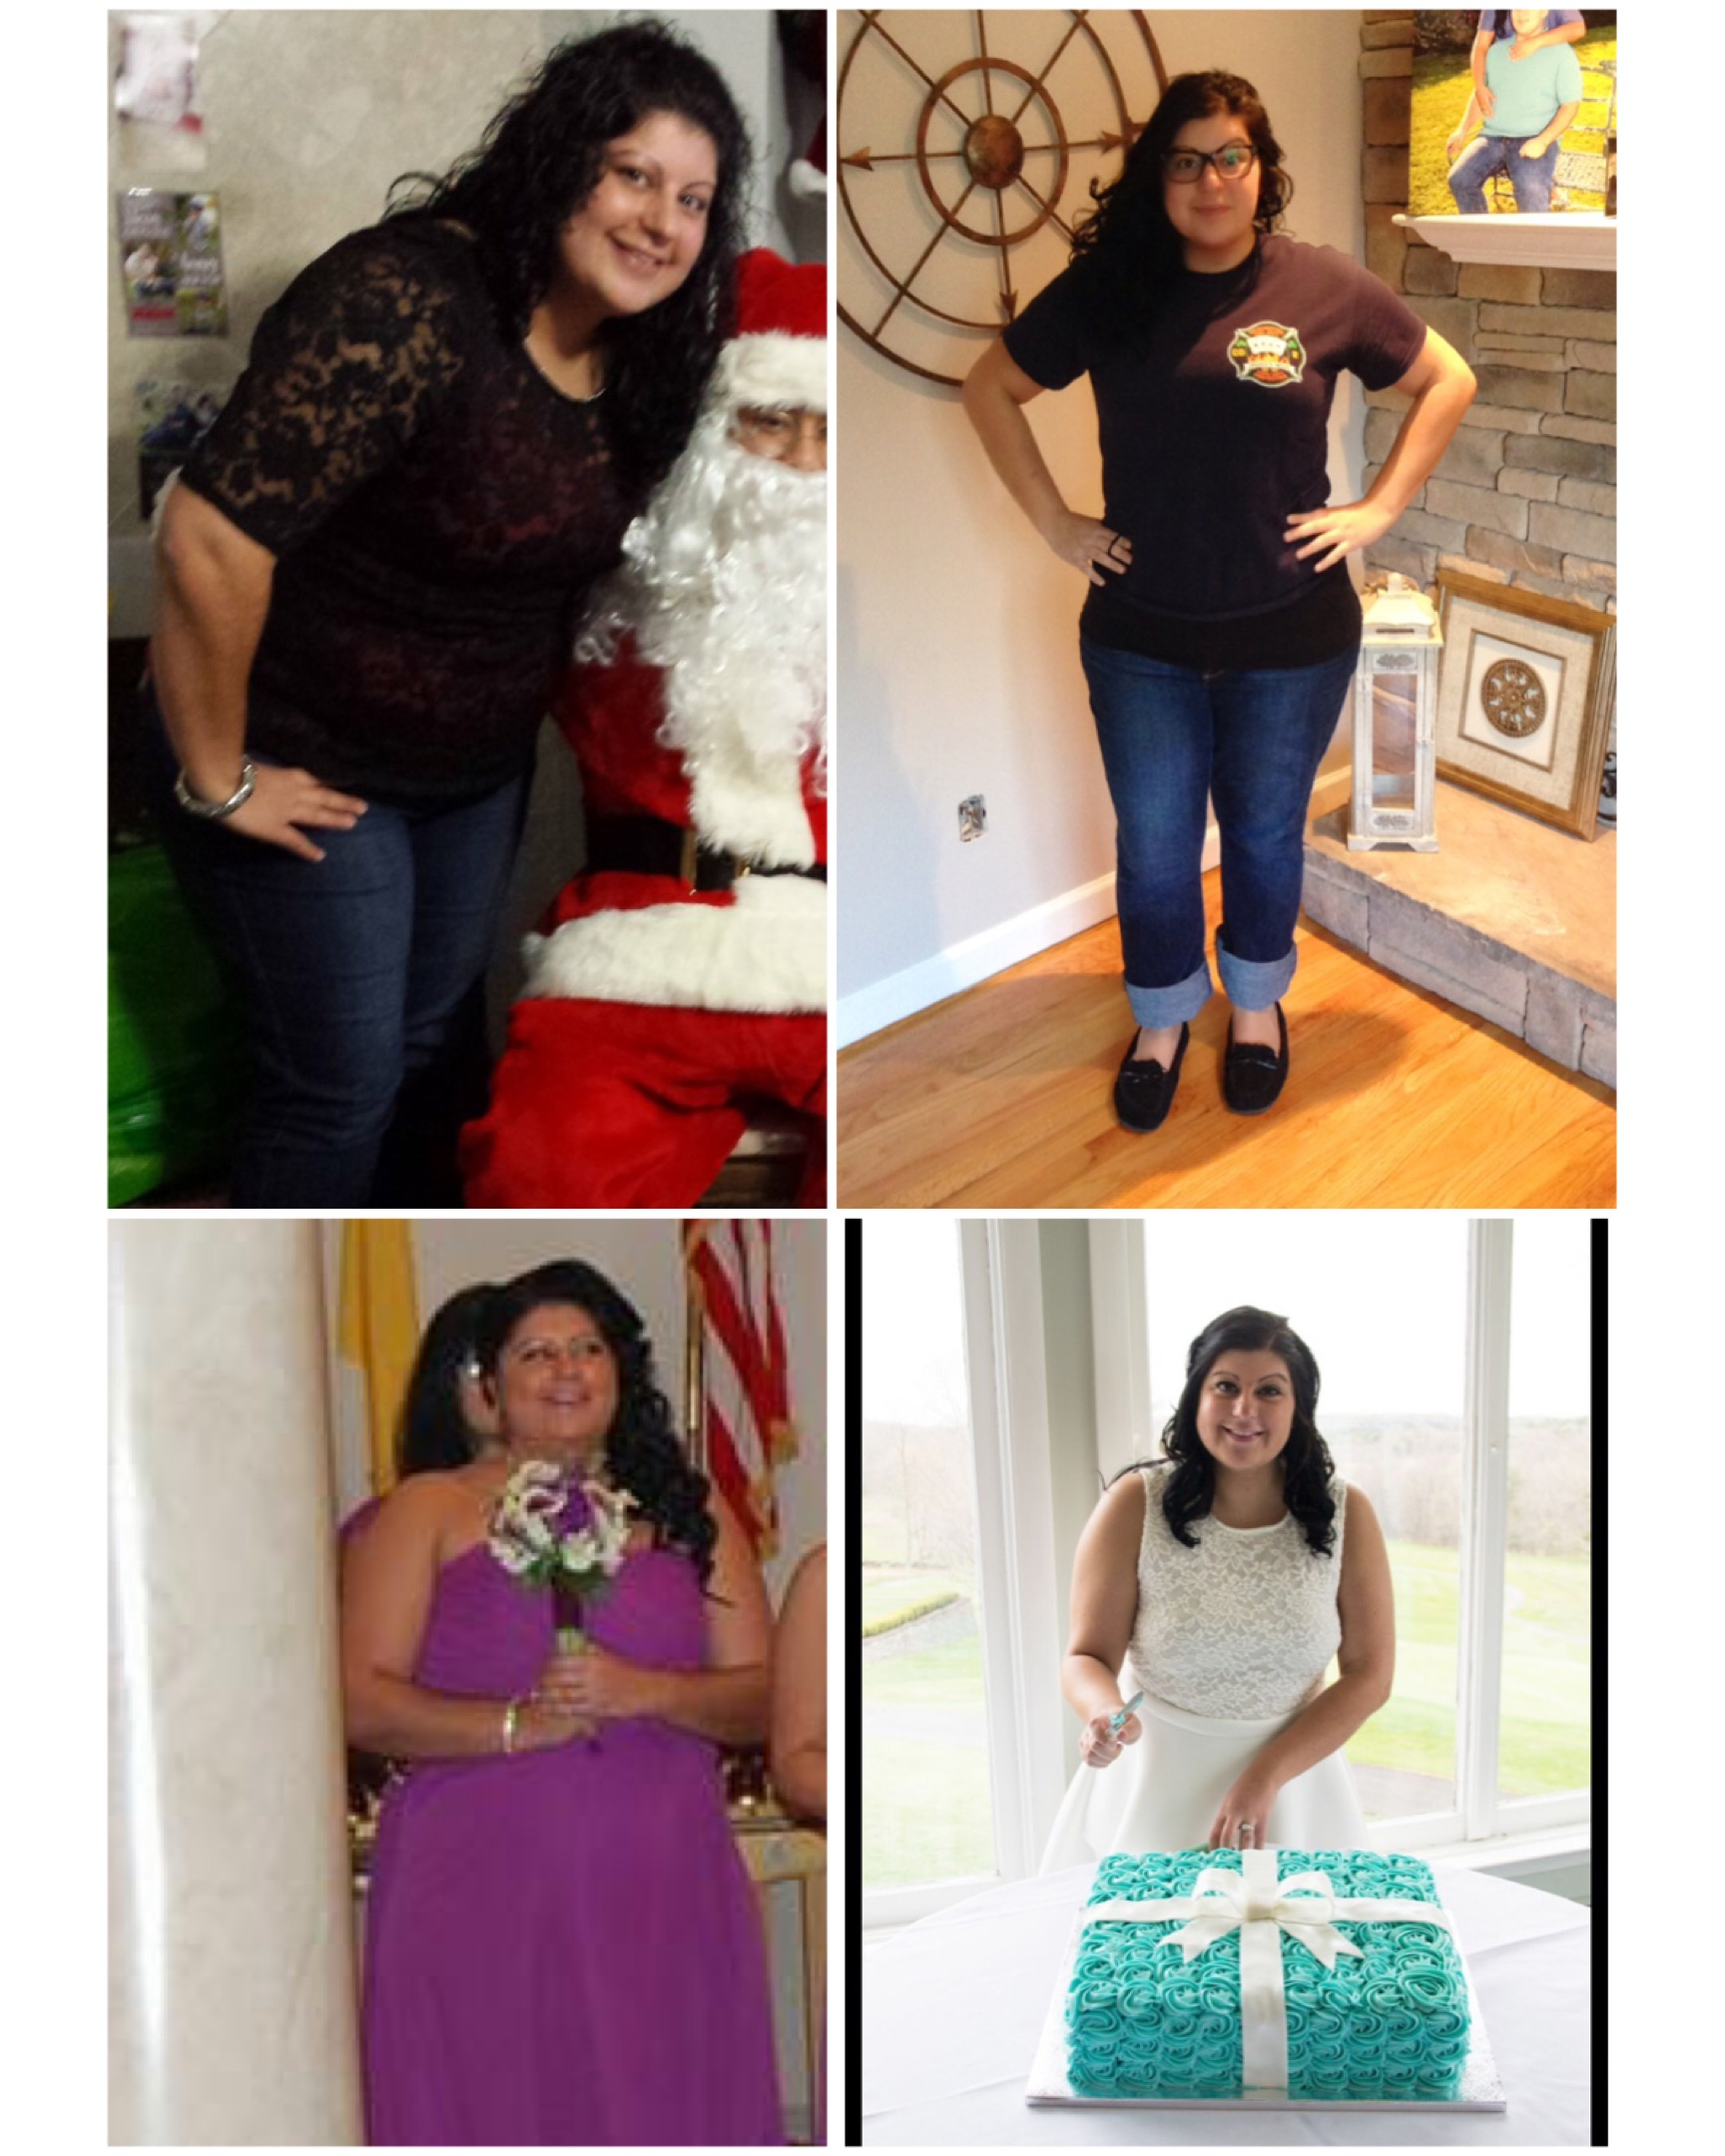 Ashley lost 45 pounds! See my before and after weight loss pictures, and read amazing weight loss success stories from real women and their best weight loss diet plans and programs. Motivation to lose weight with walking and inspiration from before and after weightloss pics and photos.